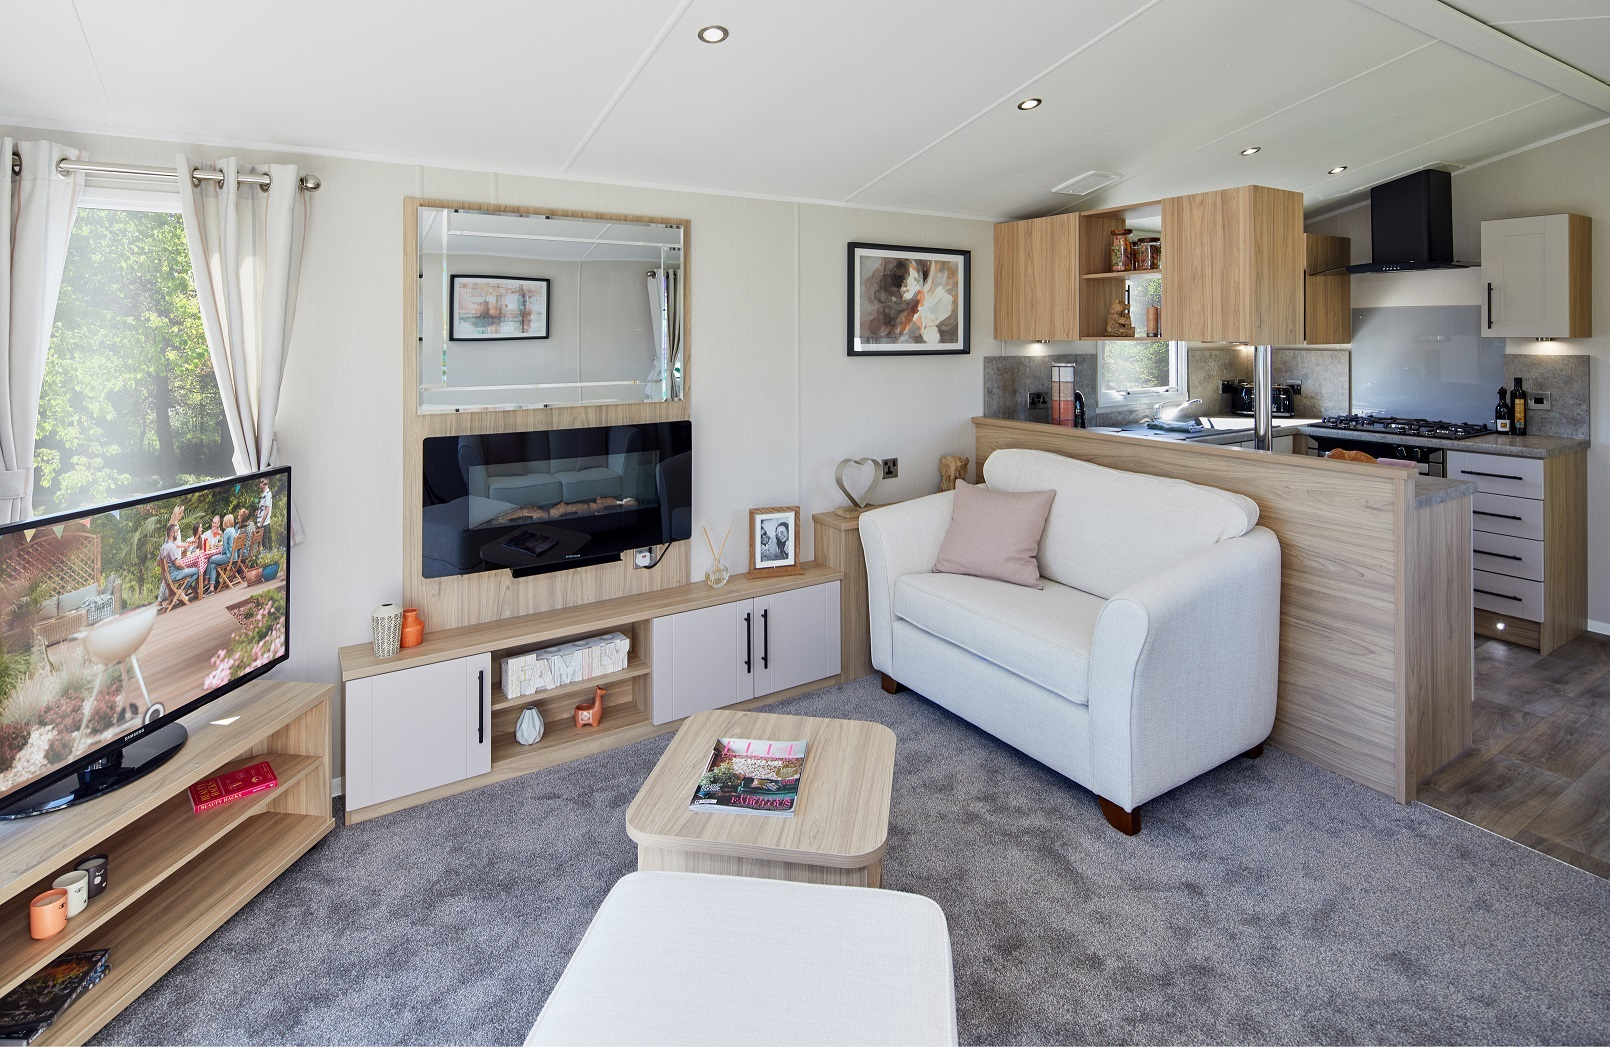 Willerby Manor: New Static Caravans and Holiday Homes for Sale, Available to Order Image 1